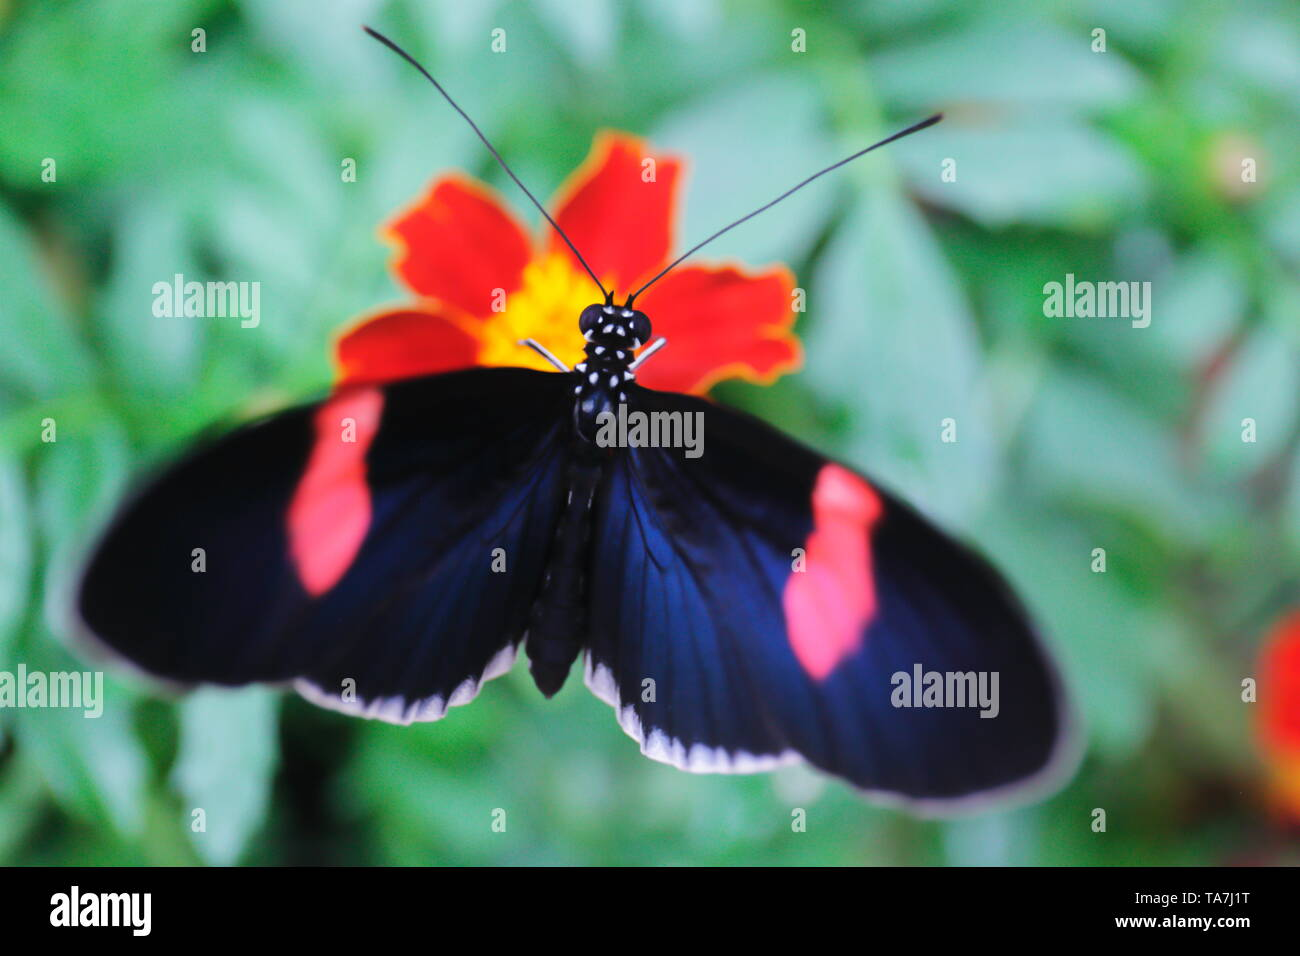 Iridescent blue and pink longwing butterfly drinking nectar from a red and yellow flower - Stock Image